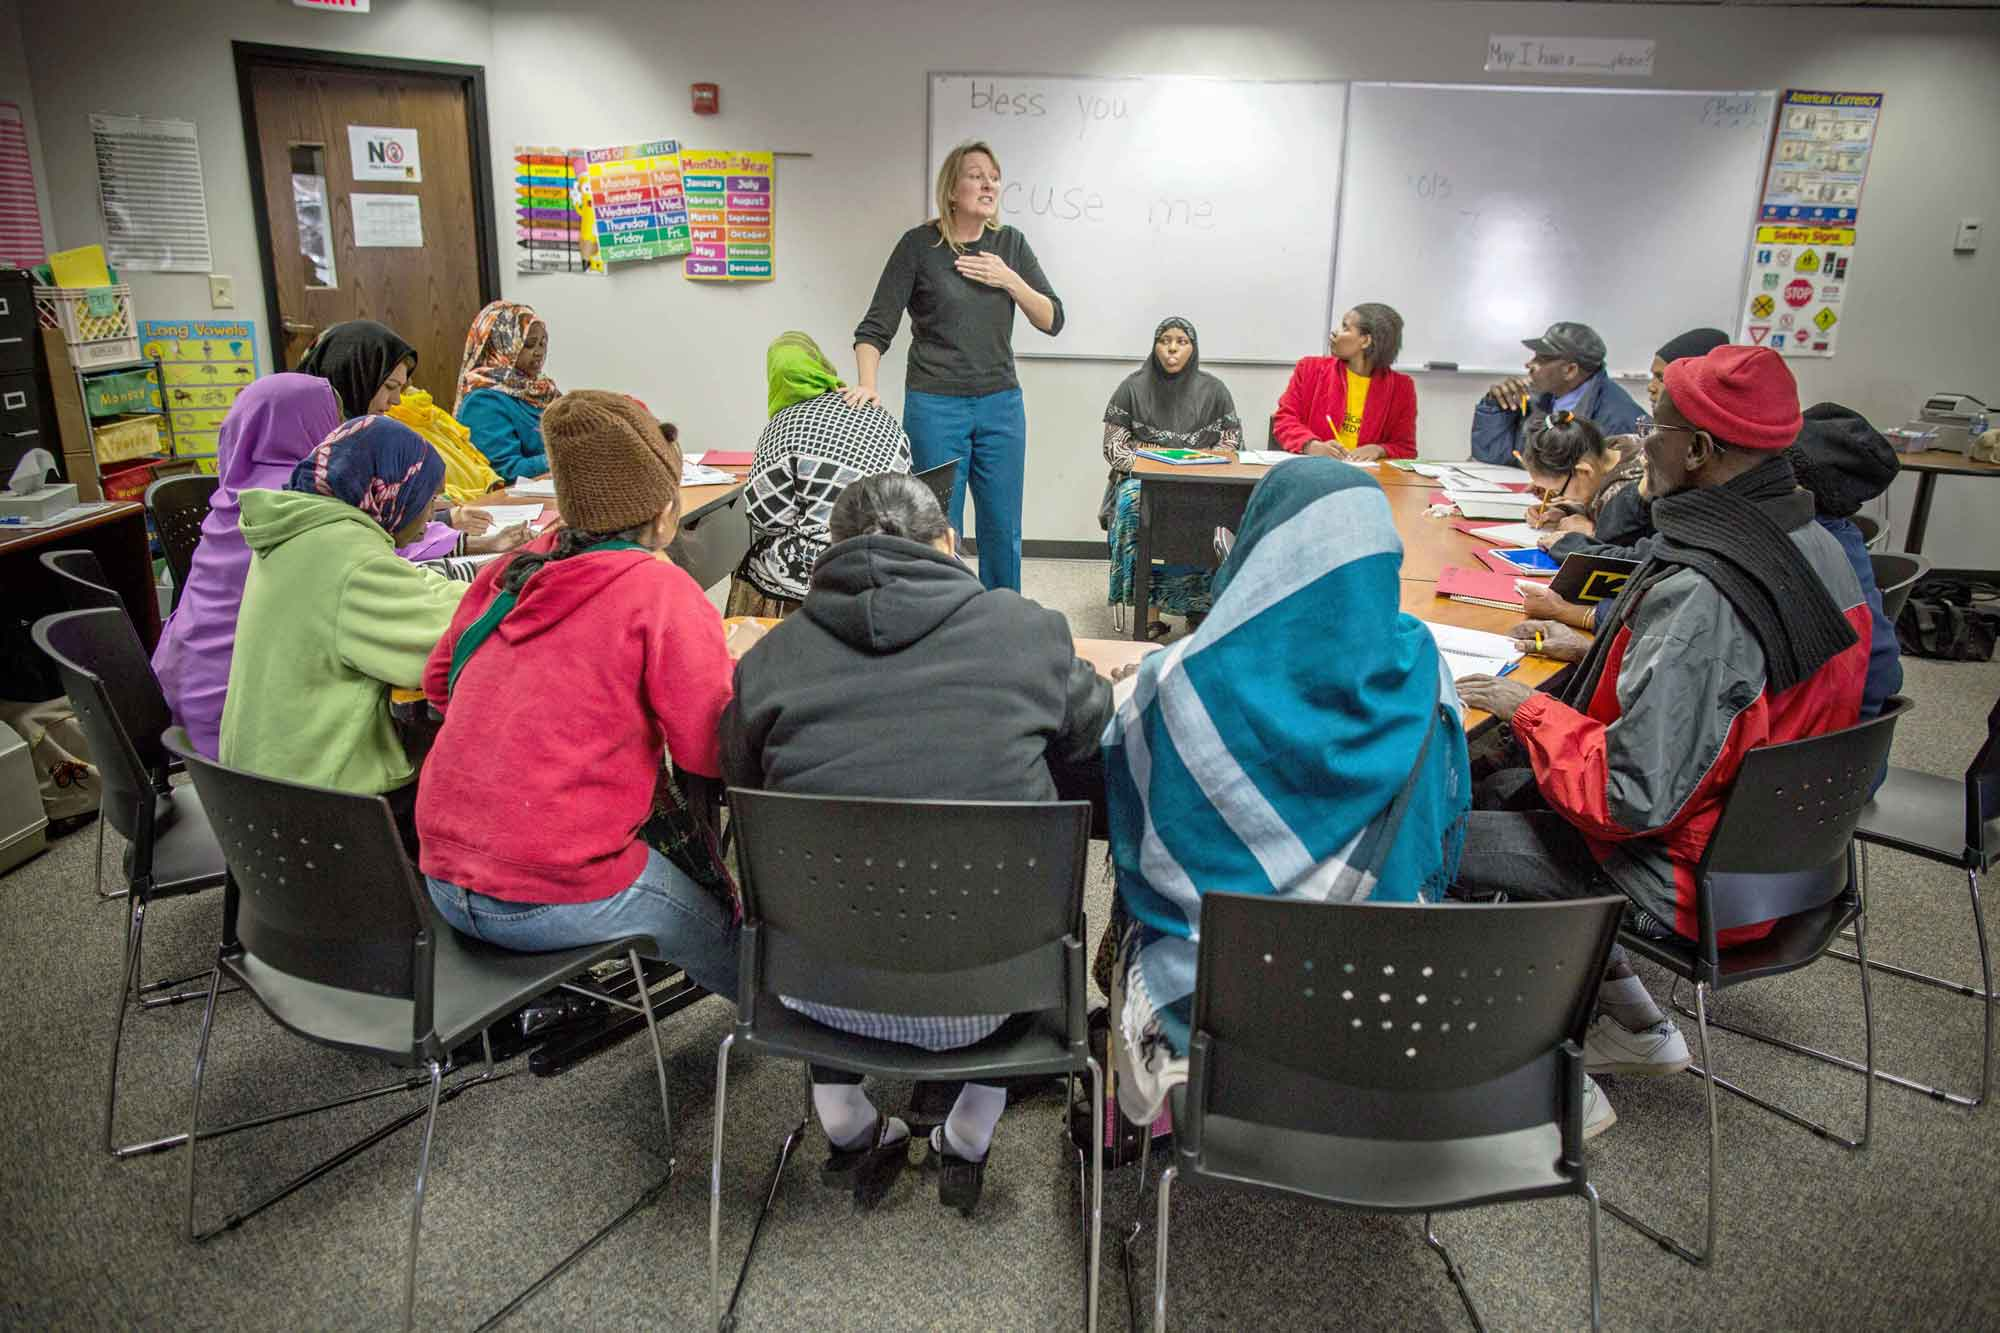 A cultural orientation trainer teaching a class of recently resettled refugees about U.S. cultural norms